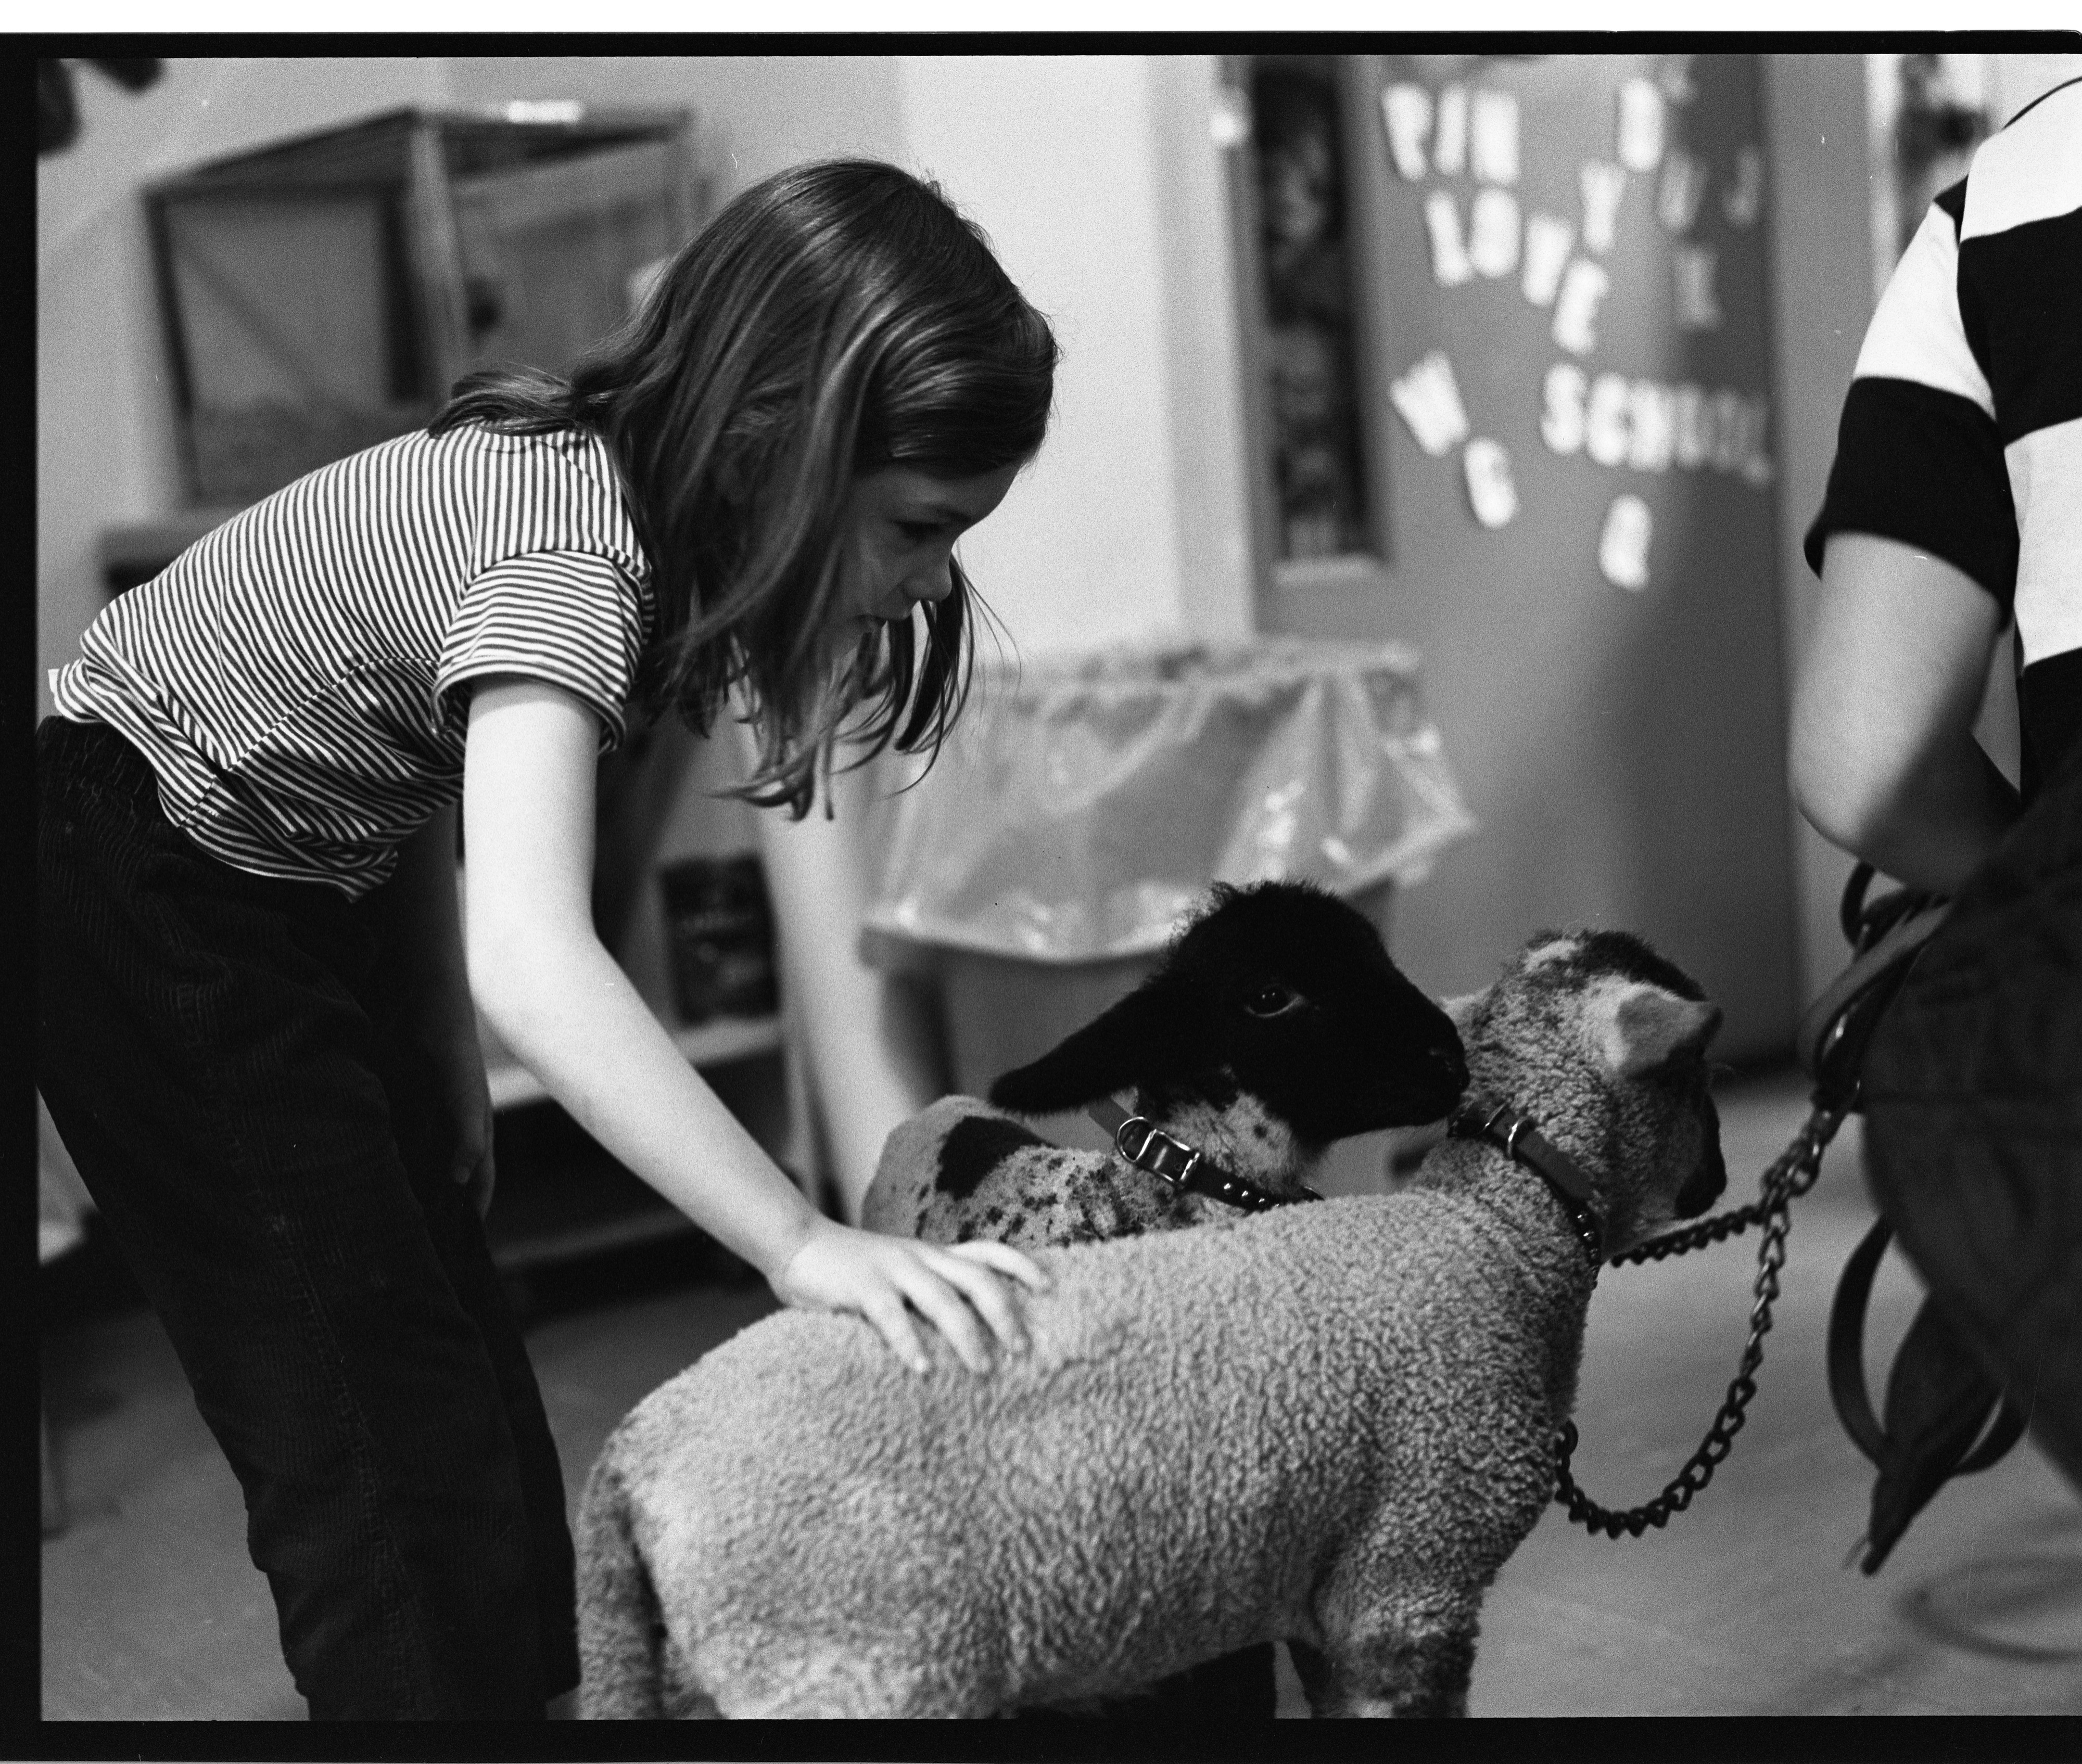 Young Girl Pets Lambs At Perry Nursery School, May 28, 1971 image